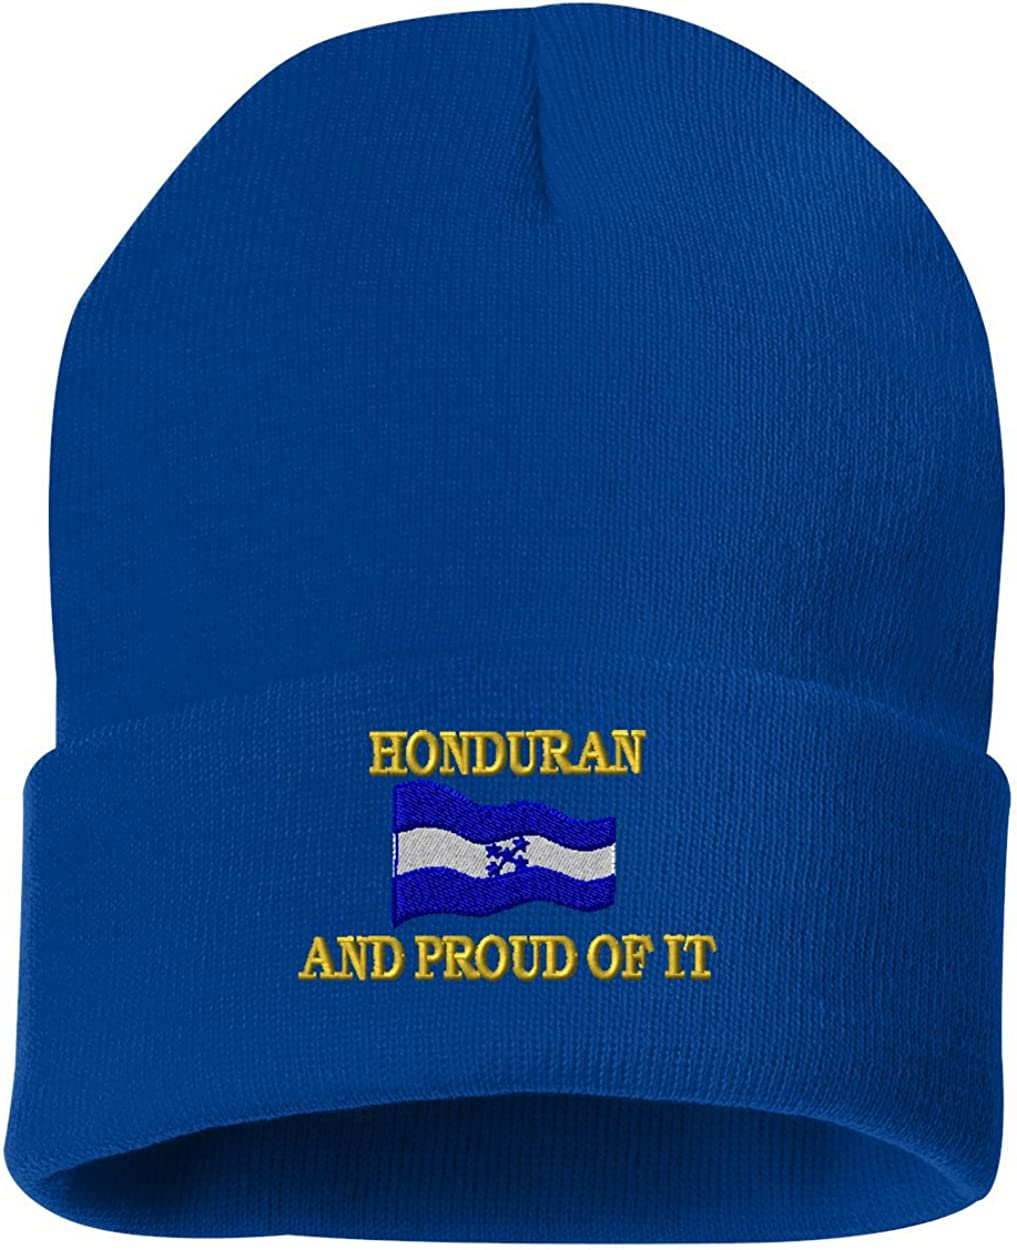 HONDURAN AND PROUD OF IT Custom Personalized Embroidery Embroidered Beanie